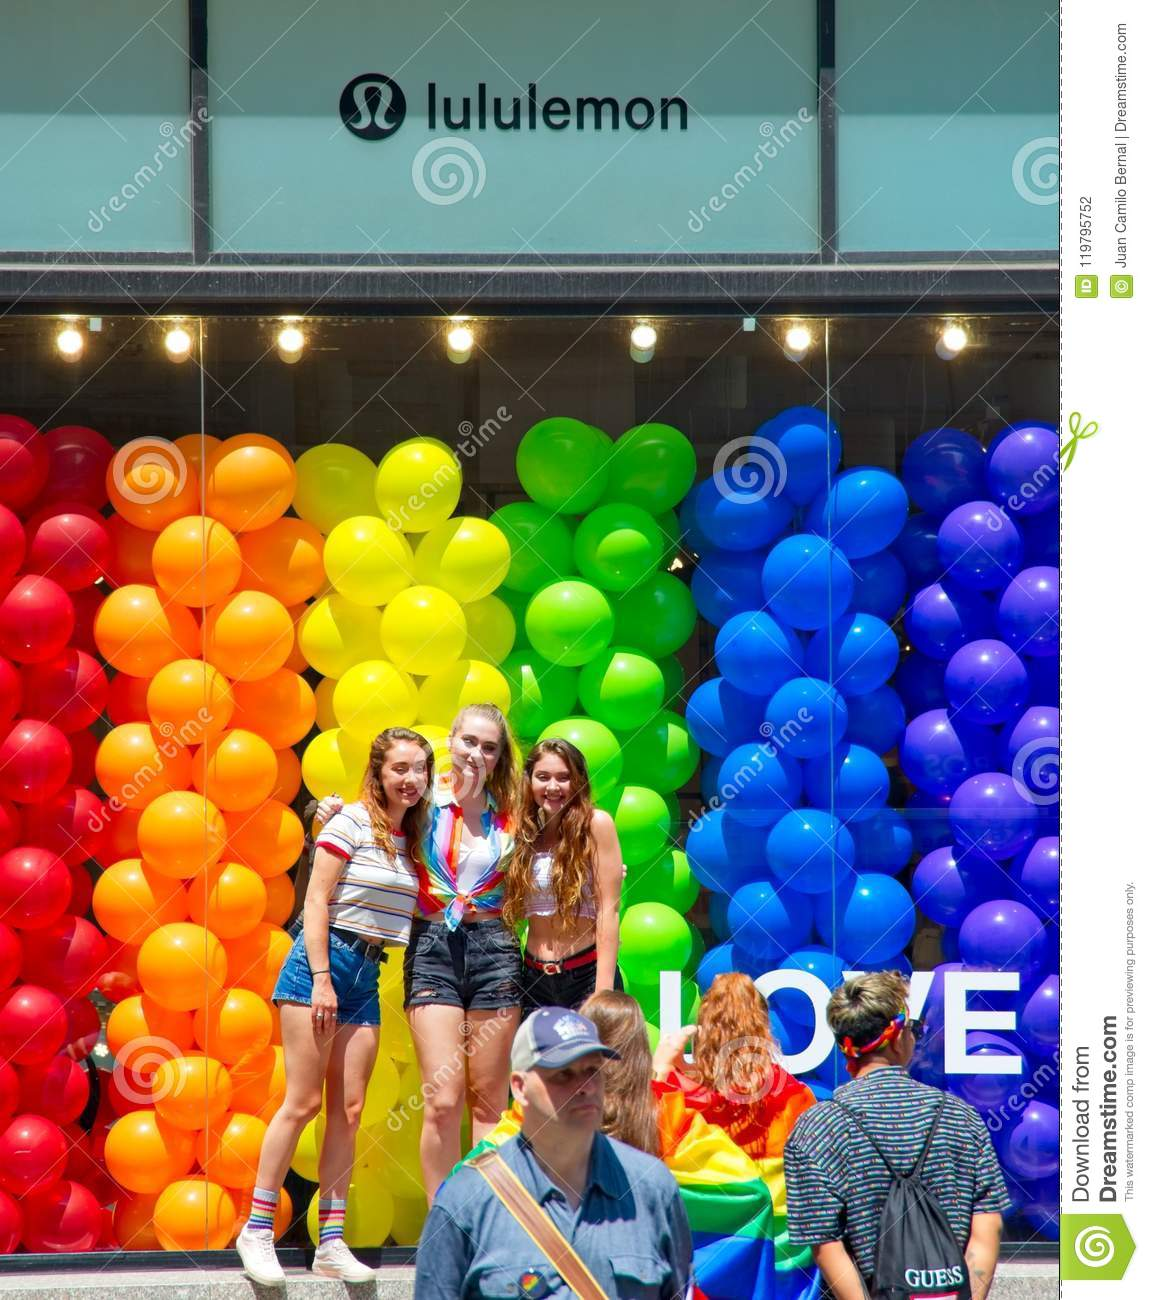 Girls posing in front of the Lululemon during the 2018 New York City Pride Parade.